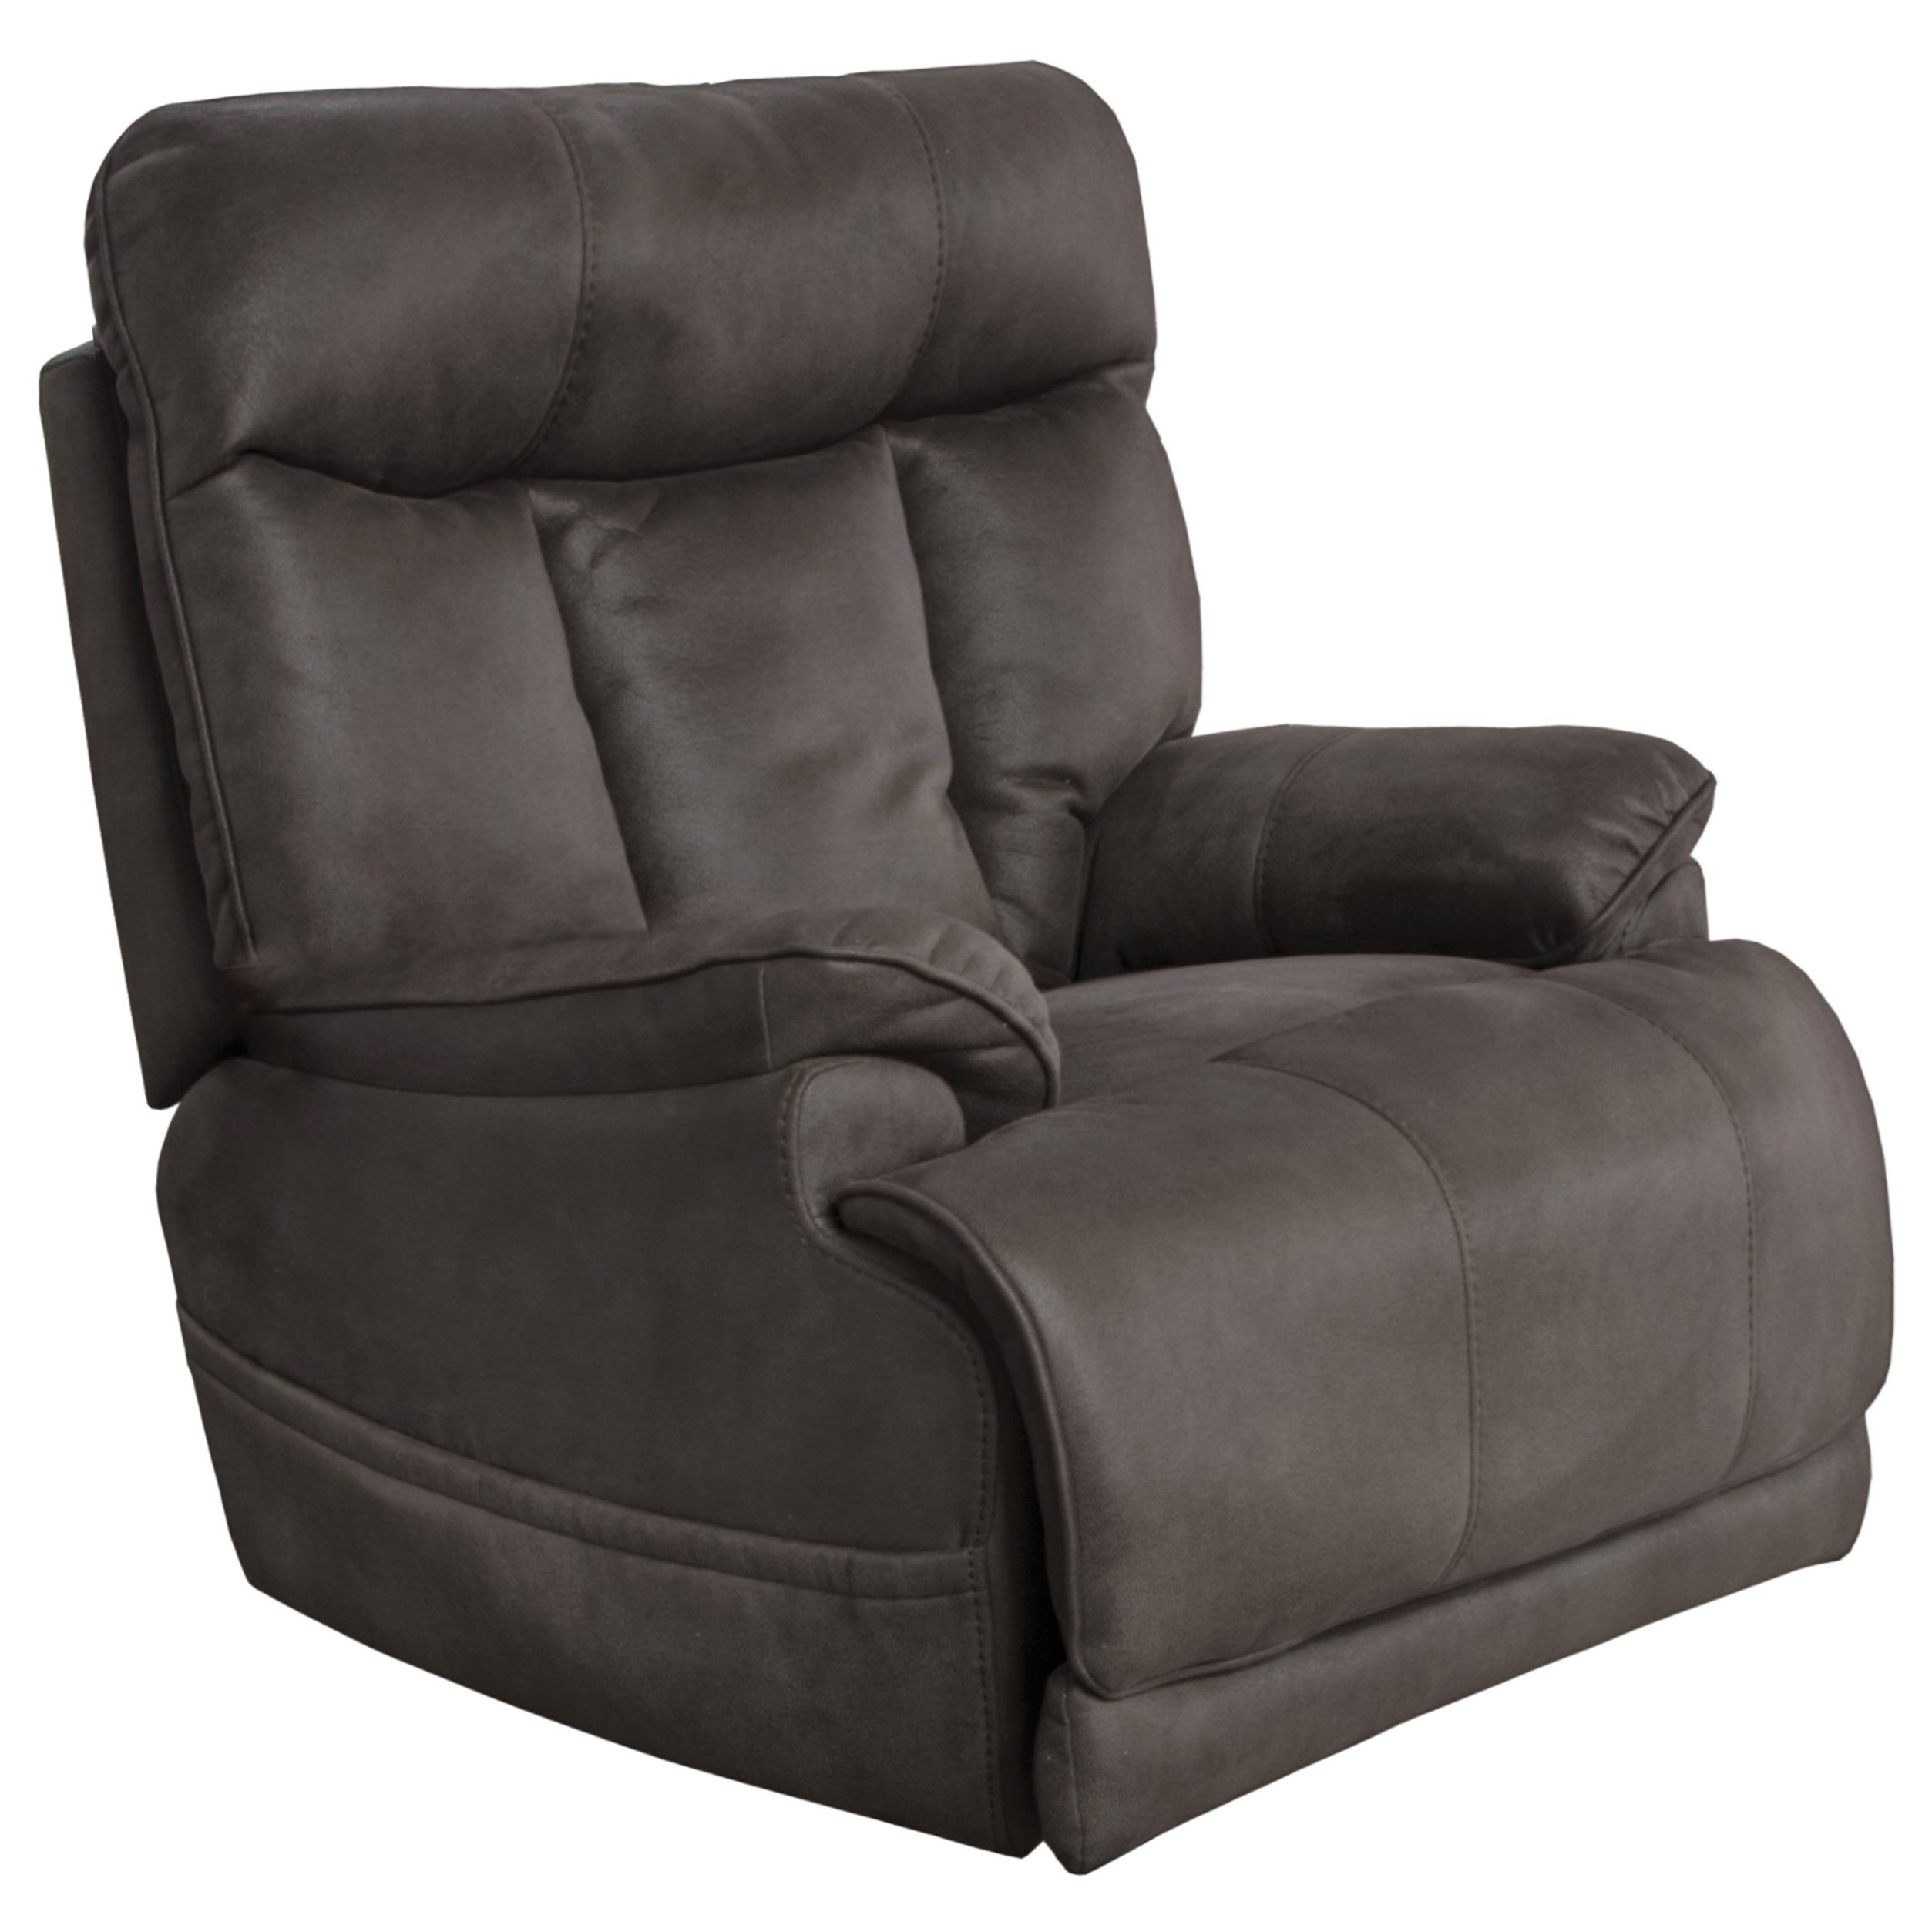 Anders Power Lay Flat Recliner by Catnapper at Lapeer Furniture & Mattress Center